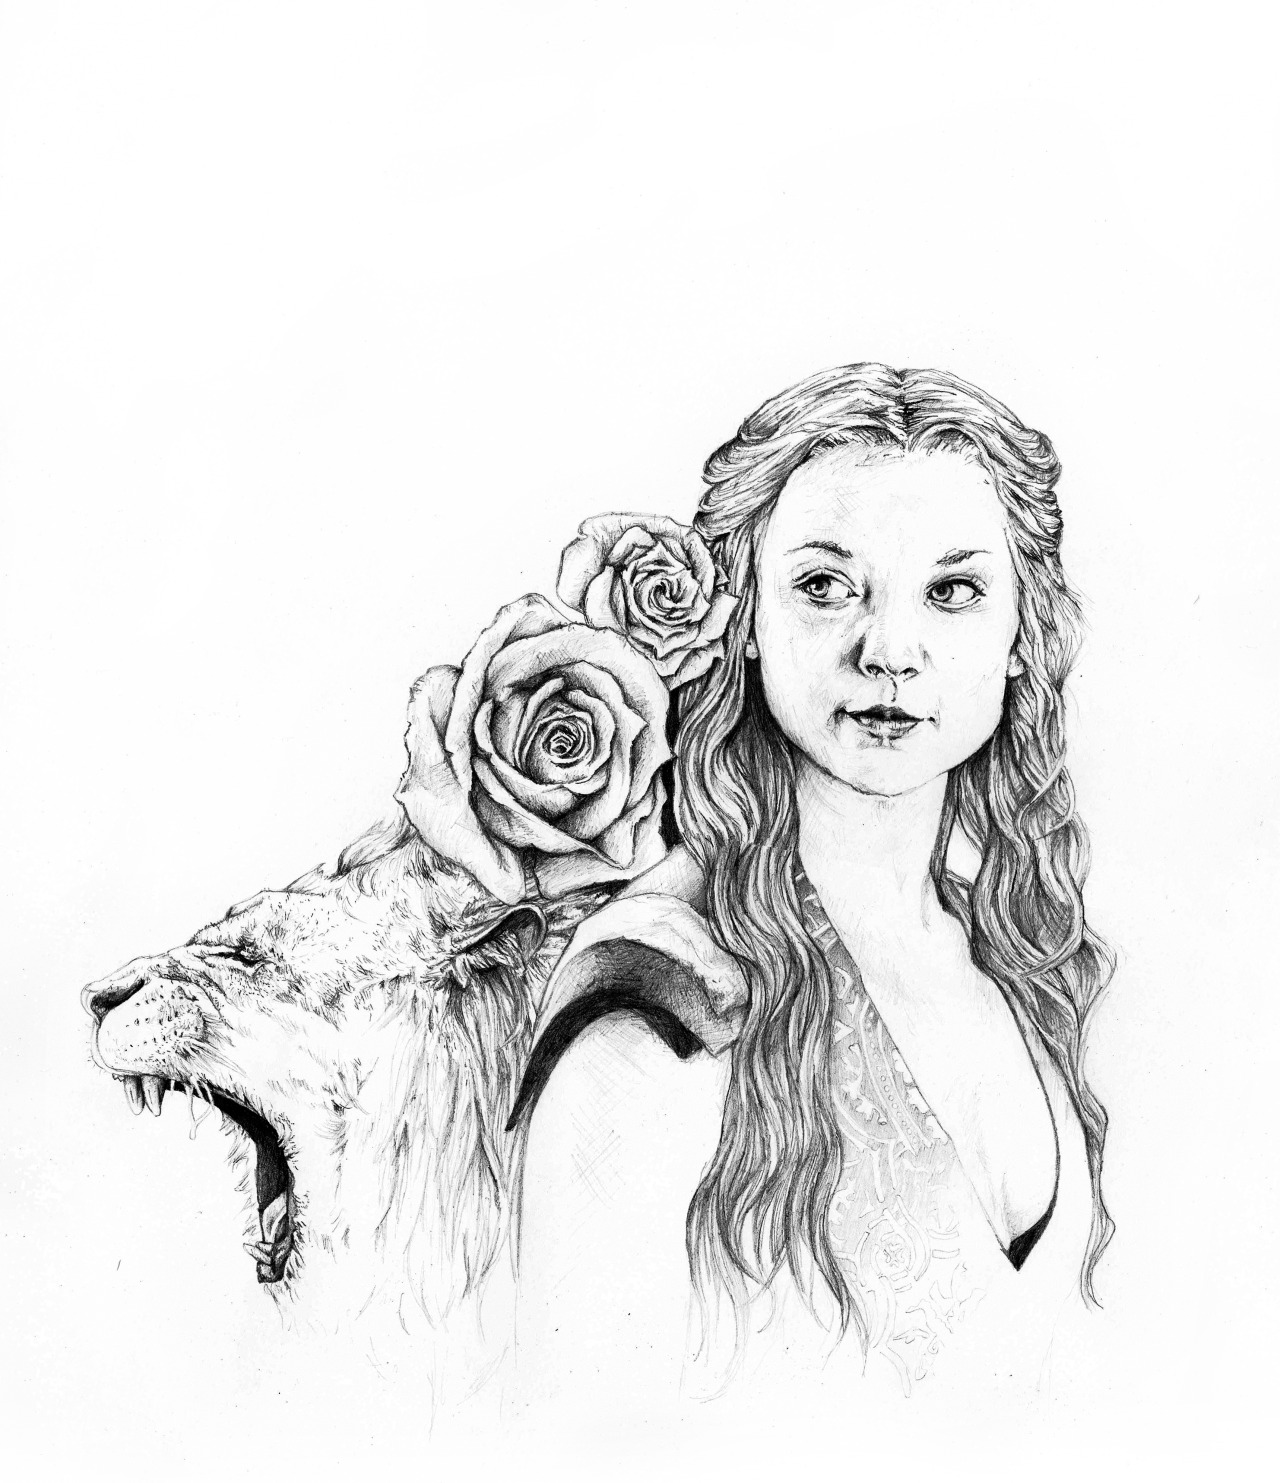 tazayoot:  Margaery Tyrell - graphite.  I've been drawing roses so much lately that drawing Margaery was inevitable! I had so much fun with this.